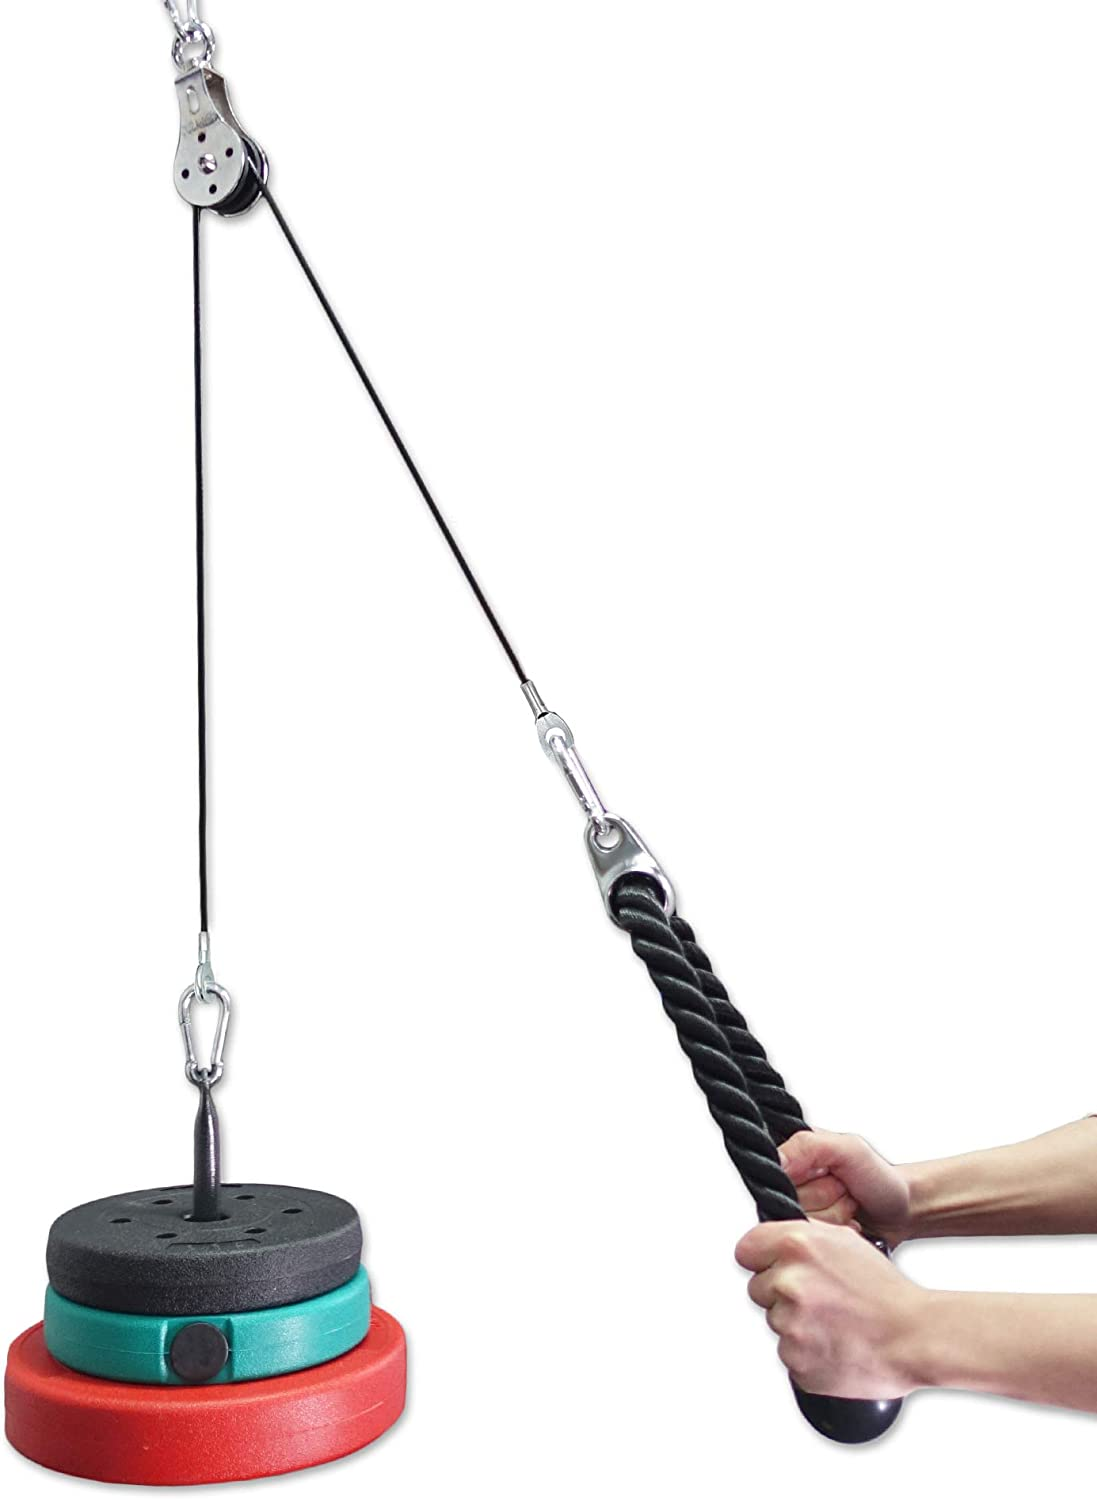 Details about  /J Bryant Fitness High and Low Double Pulley Cable Machine Attachment System A...